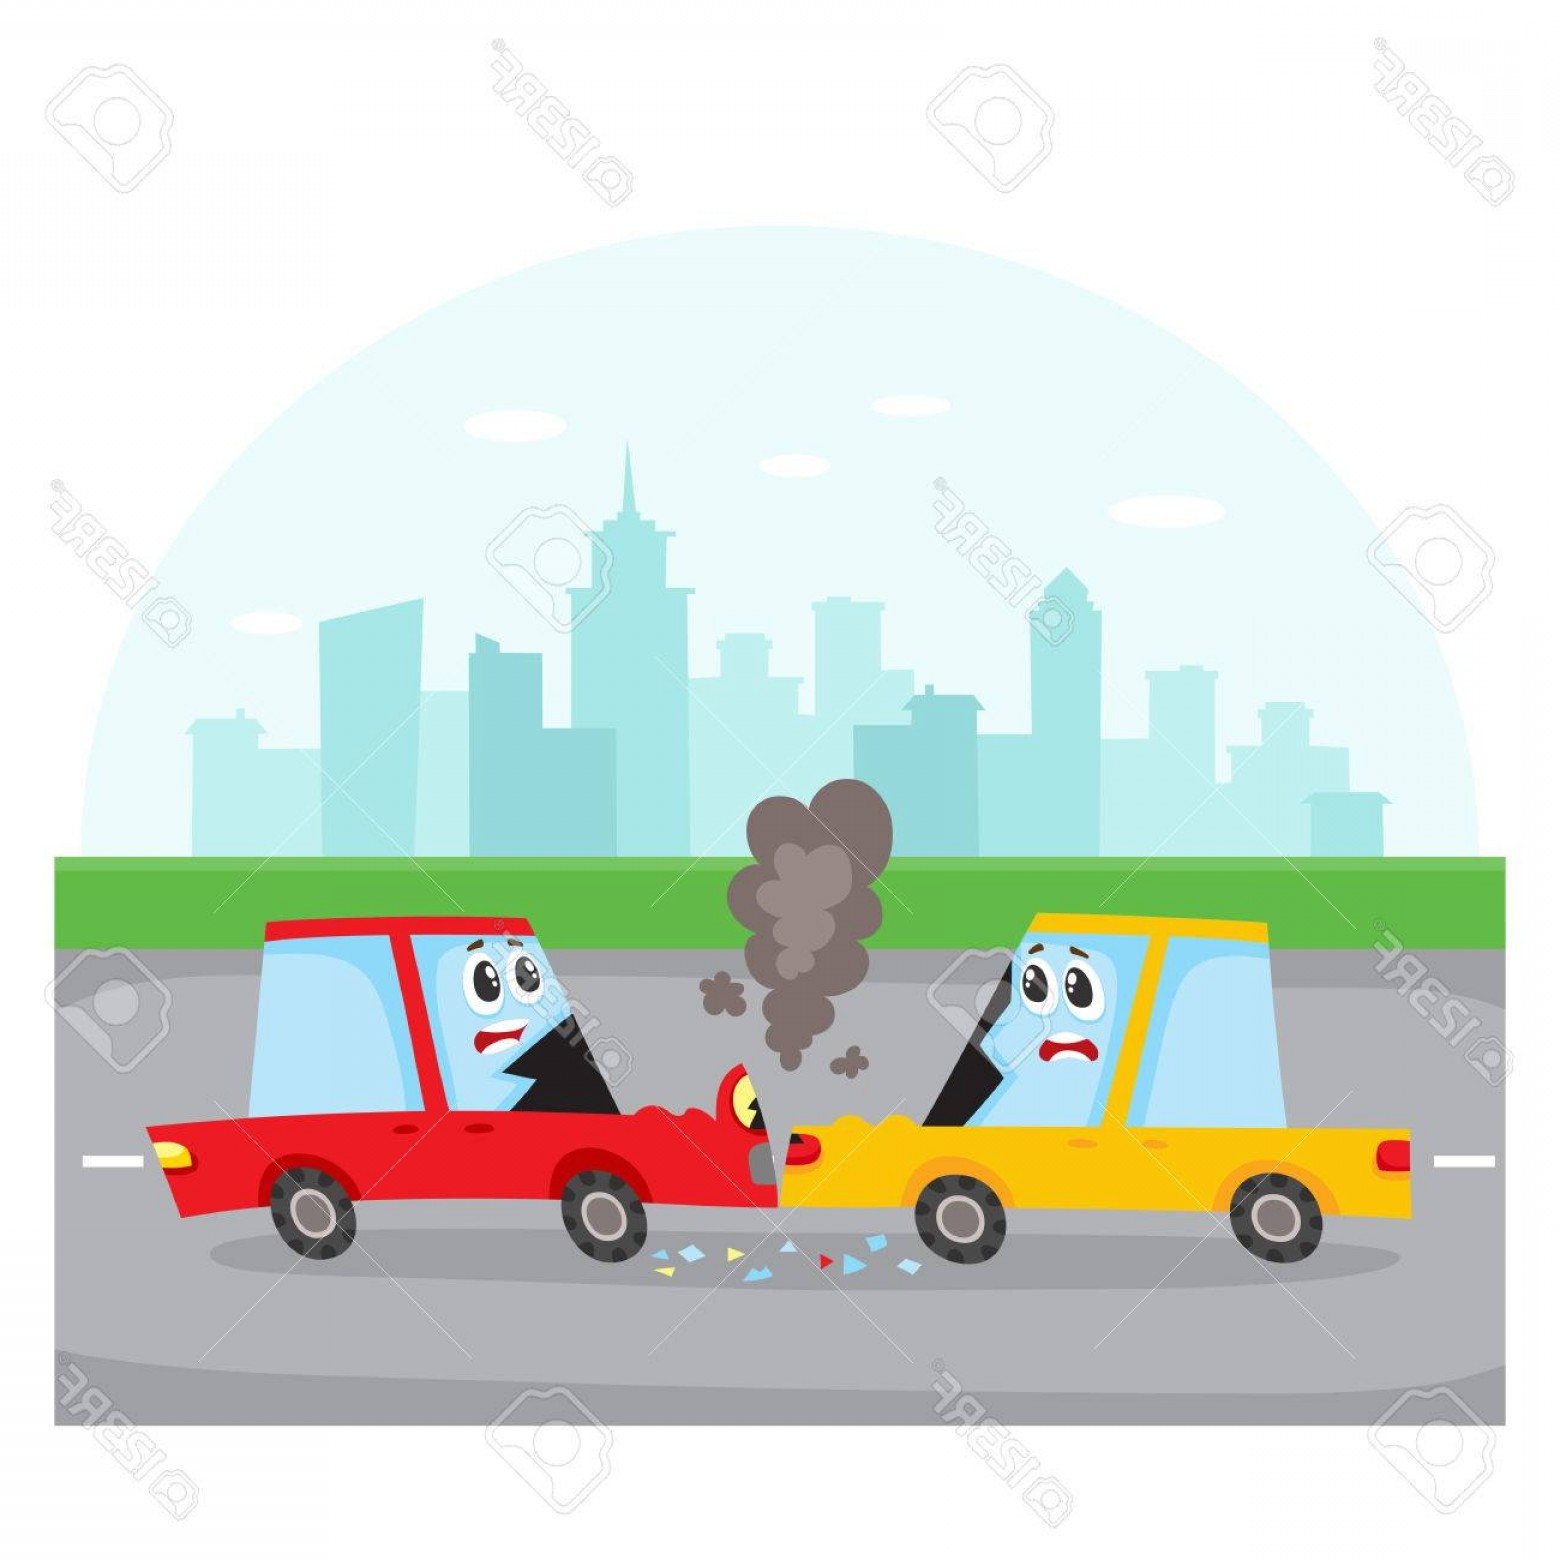 Face Side Pedestrian Vector: Photostock Vector Road Accident Head On Collision On City Street With Car Characters Side View Cartoon Vector Illustra